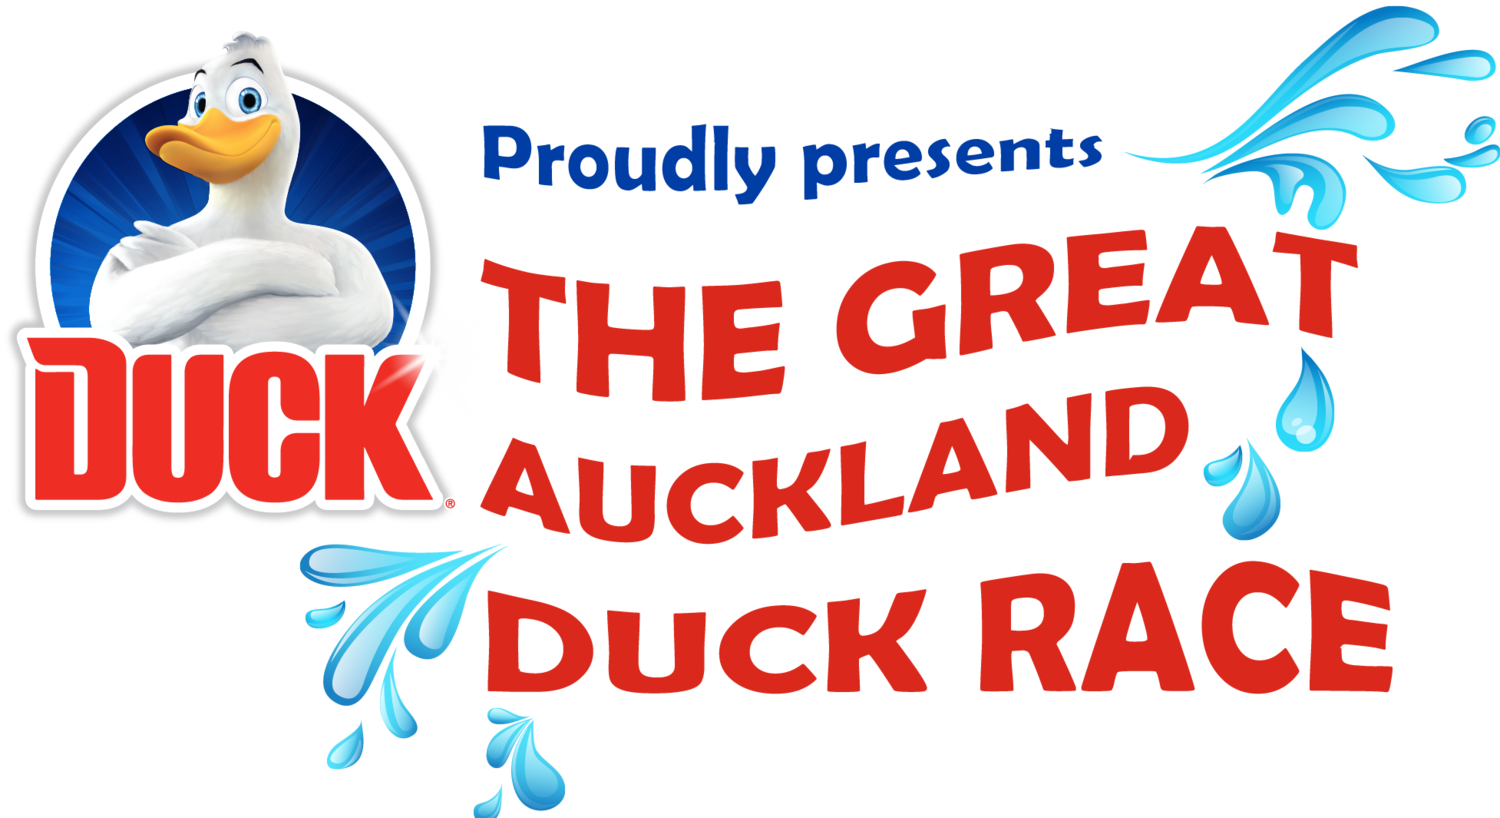 The Great Auckland Duck Race